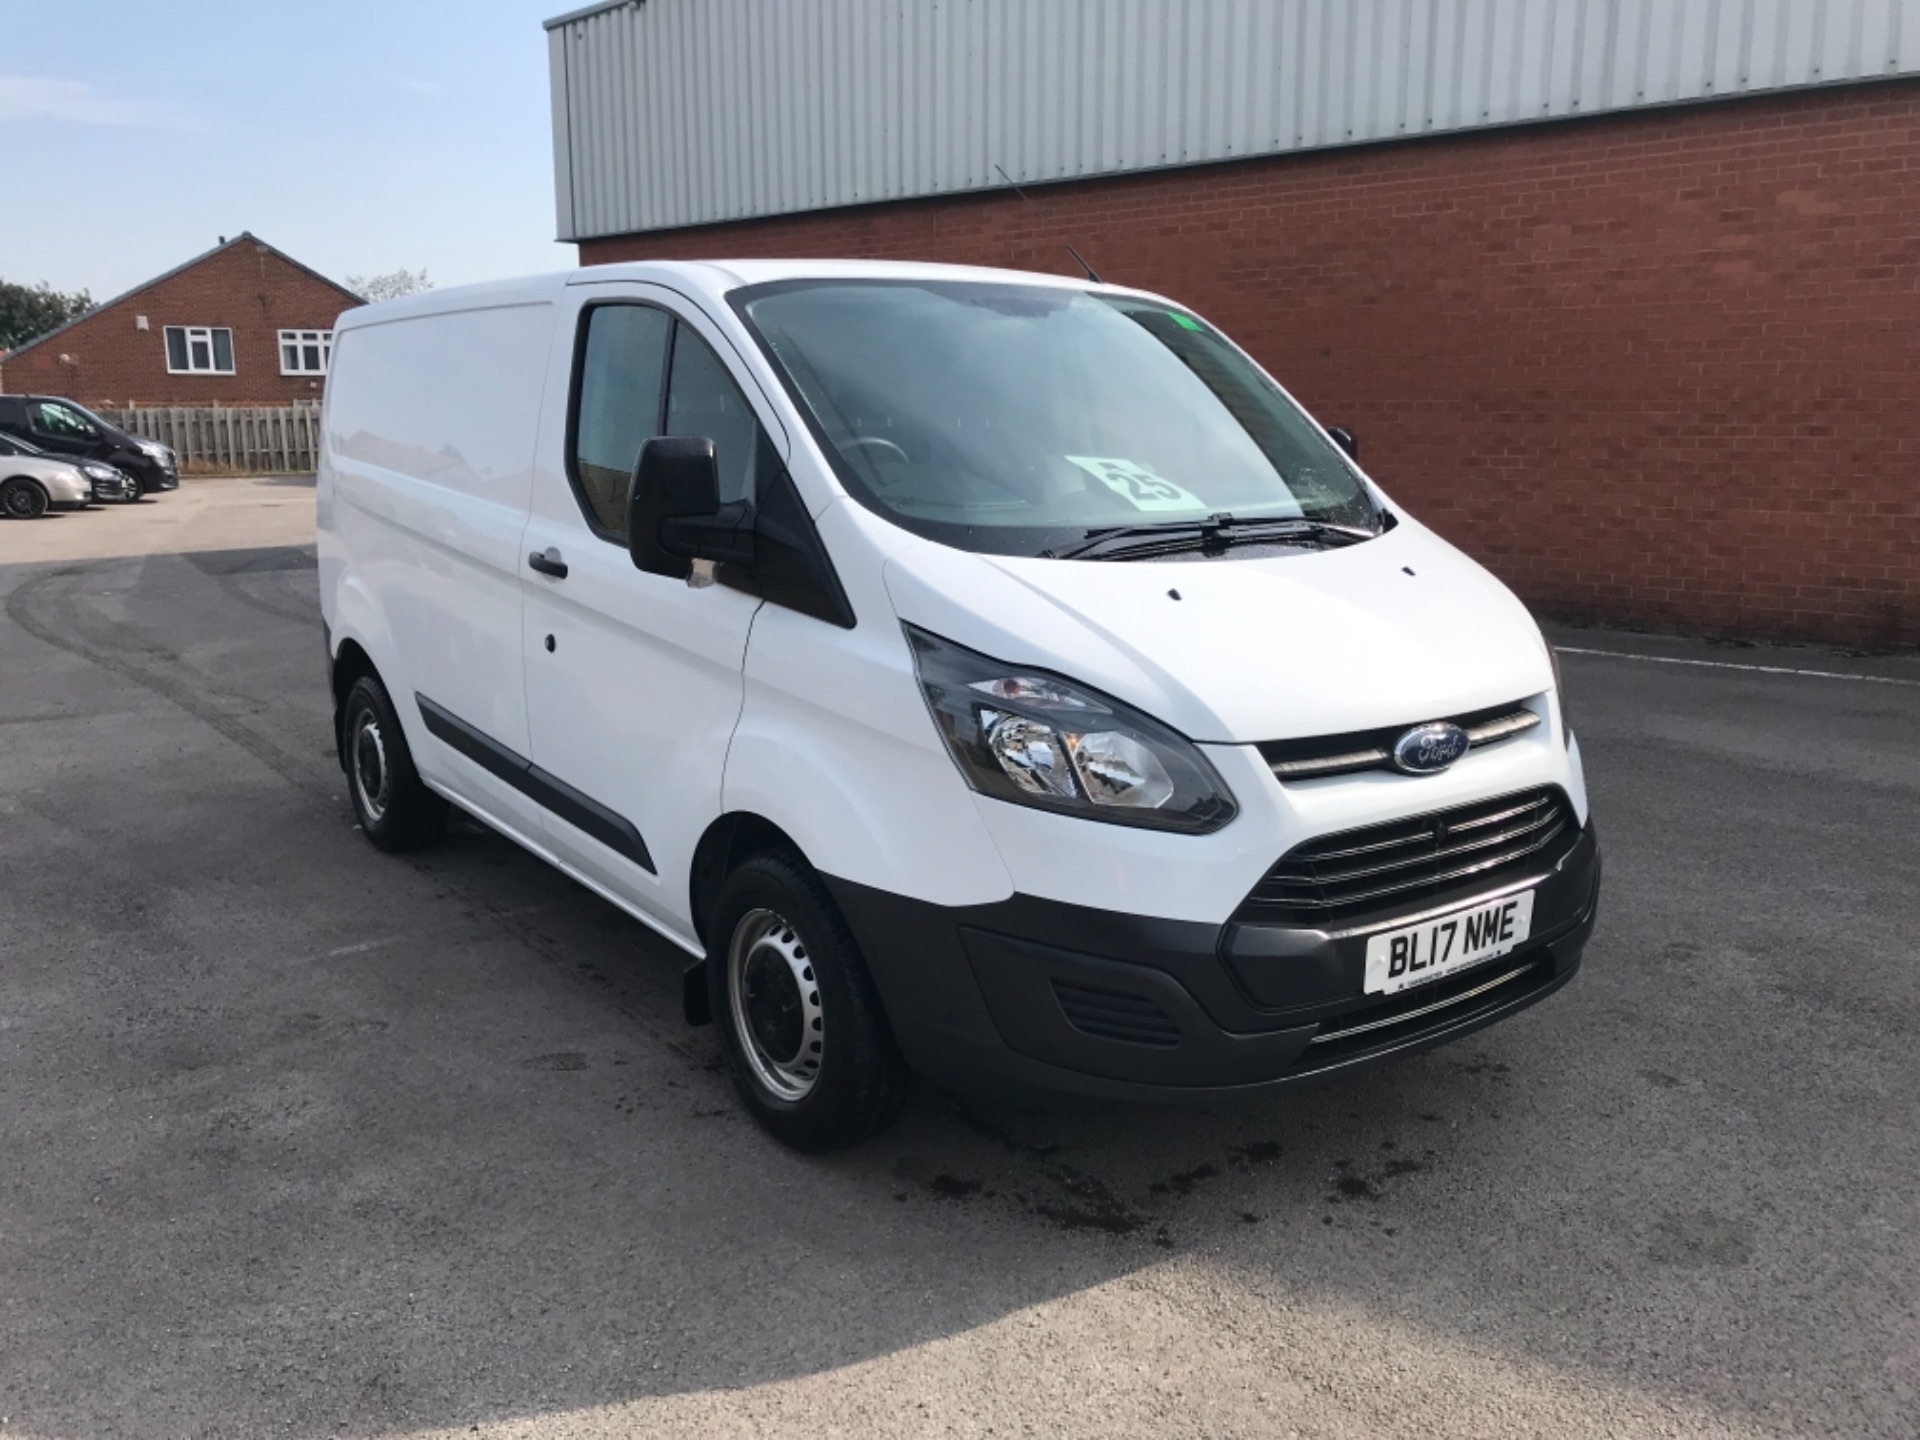 2017 Ford Transit Custom 2.0 Tdci 105Ps Low Roof Van EURO 6 (BL17NME)